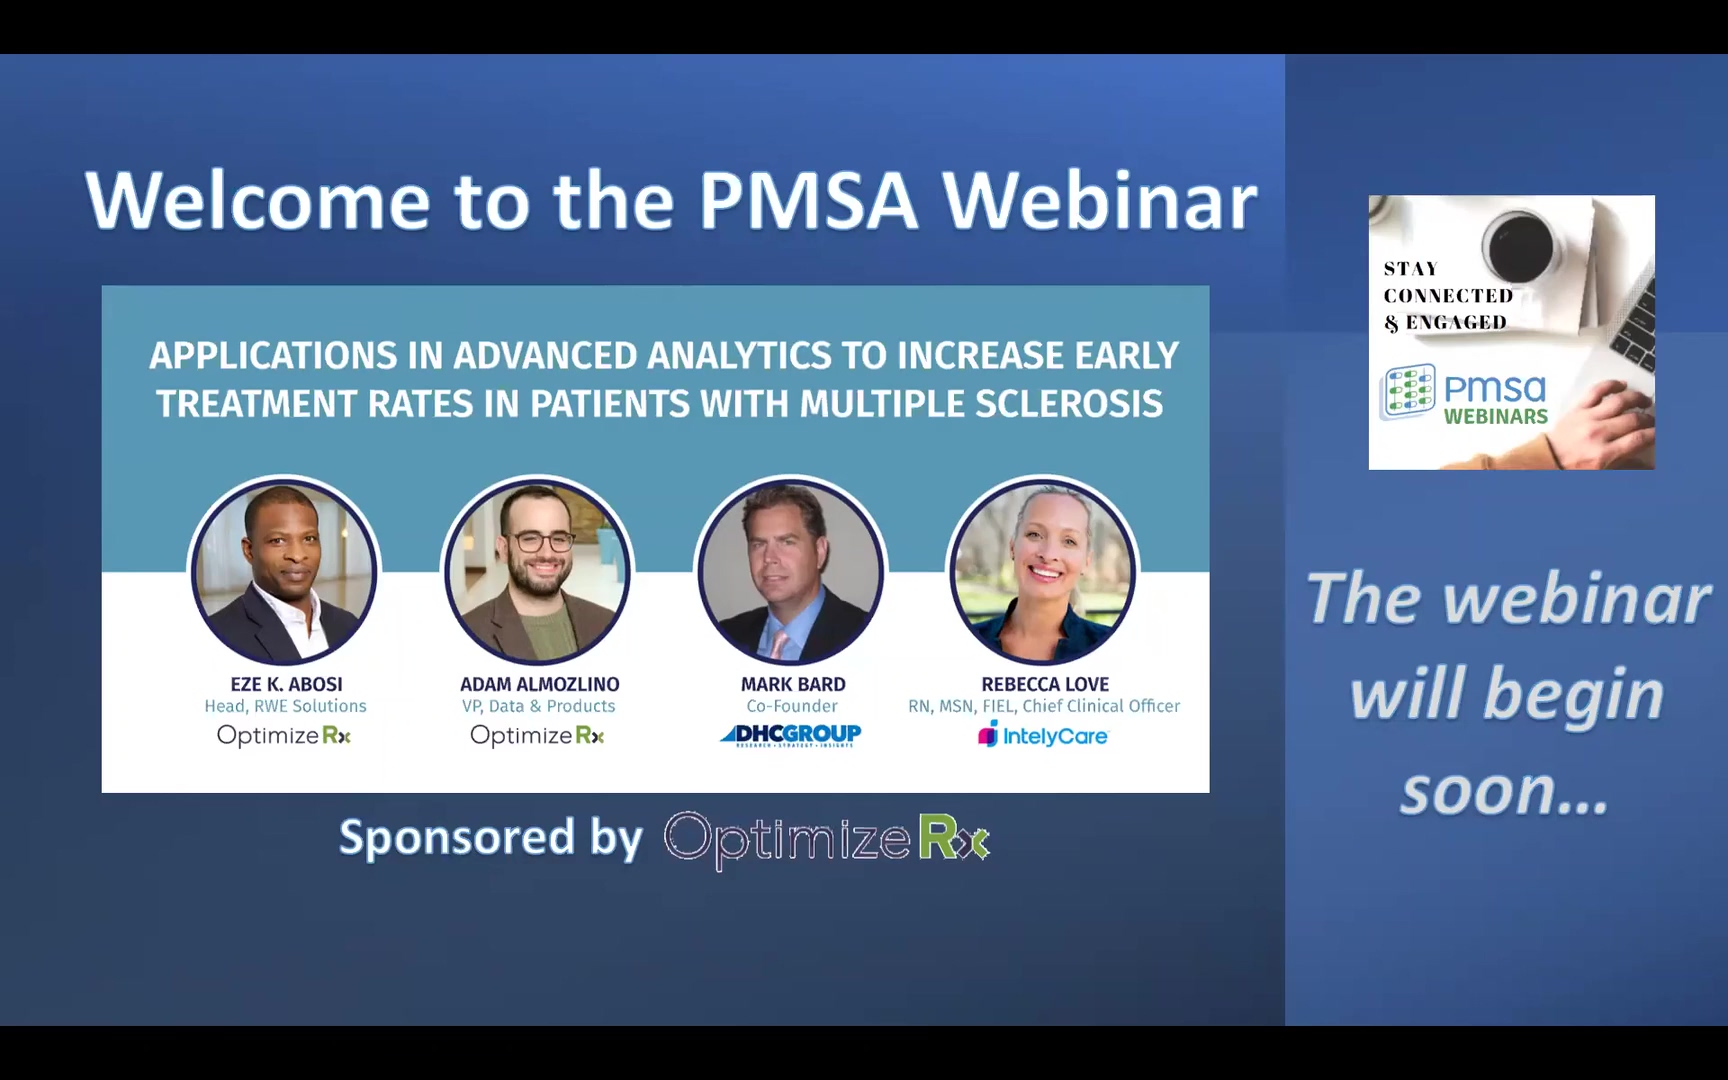 Applications in Advanced Analytics to Increase Early Treatment Rates in Patients with Multiple Scler